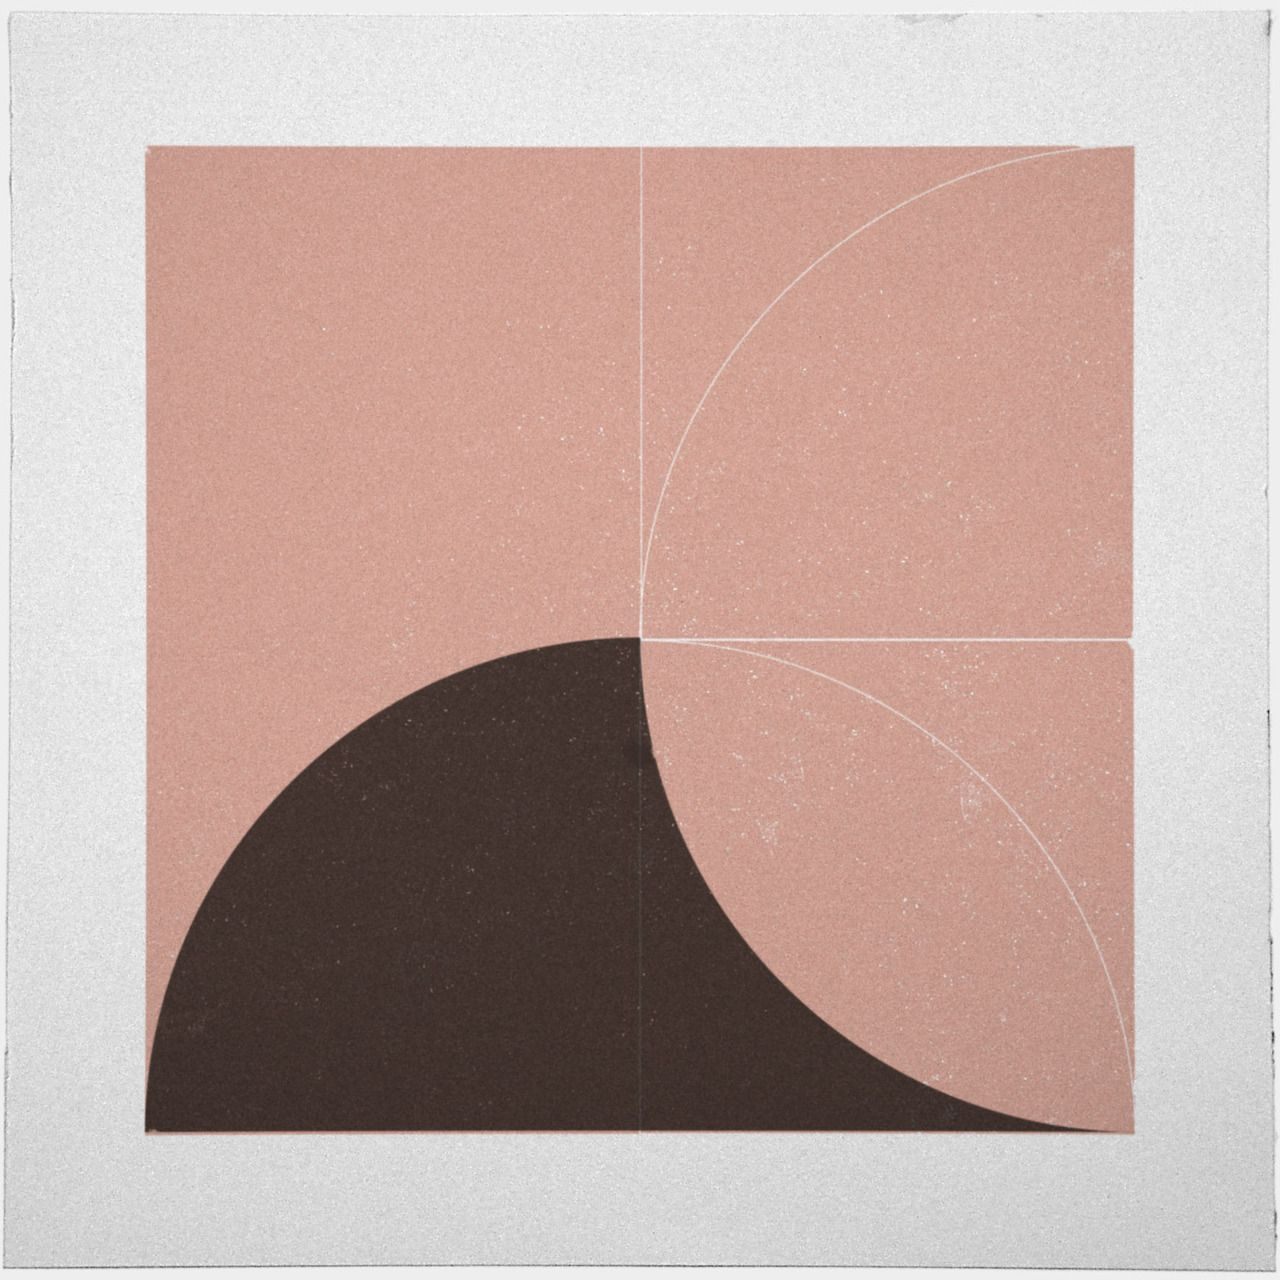 47 Anatomy of a wave – A new minimal geometric composition each day ...